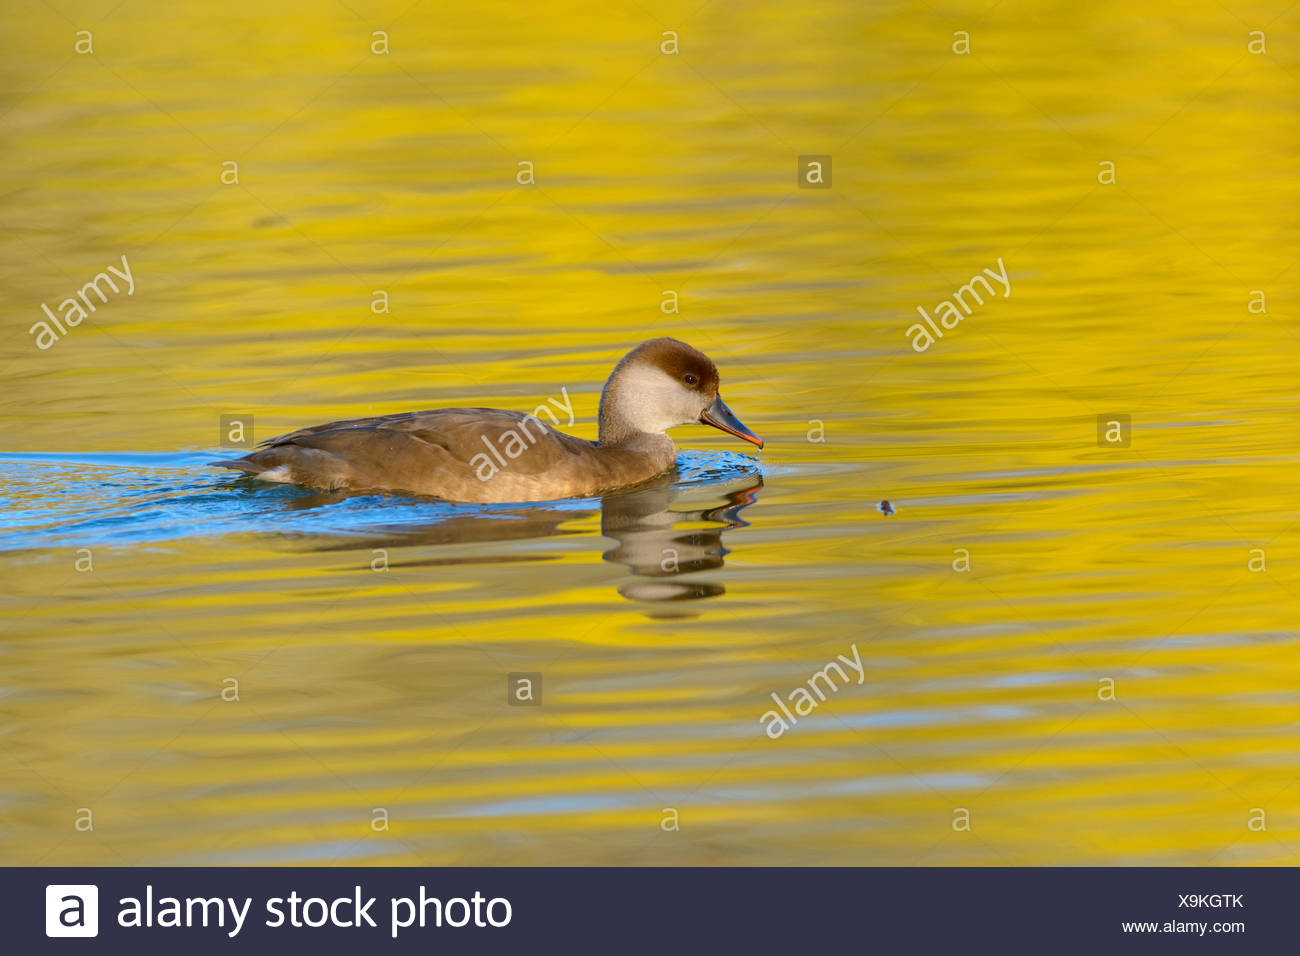 Feral domestic duck, duck (Anatidae) in water, golden light, evening light, Bavaria, Germany - Stock Image